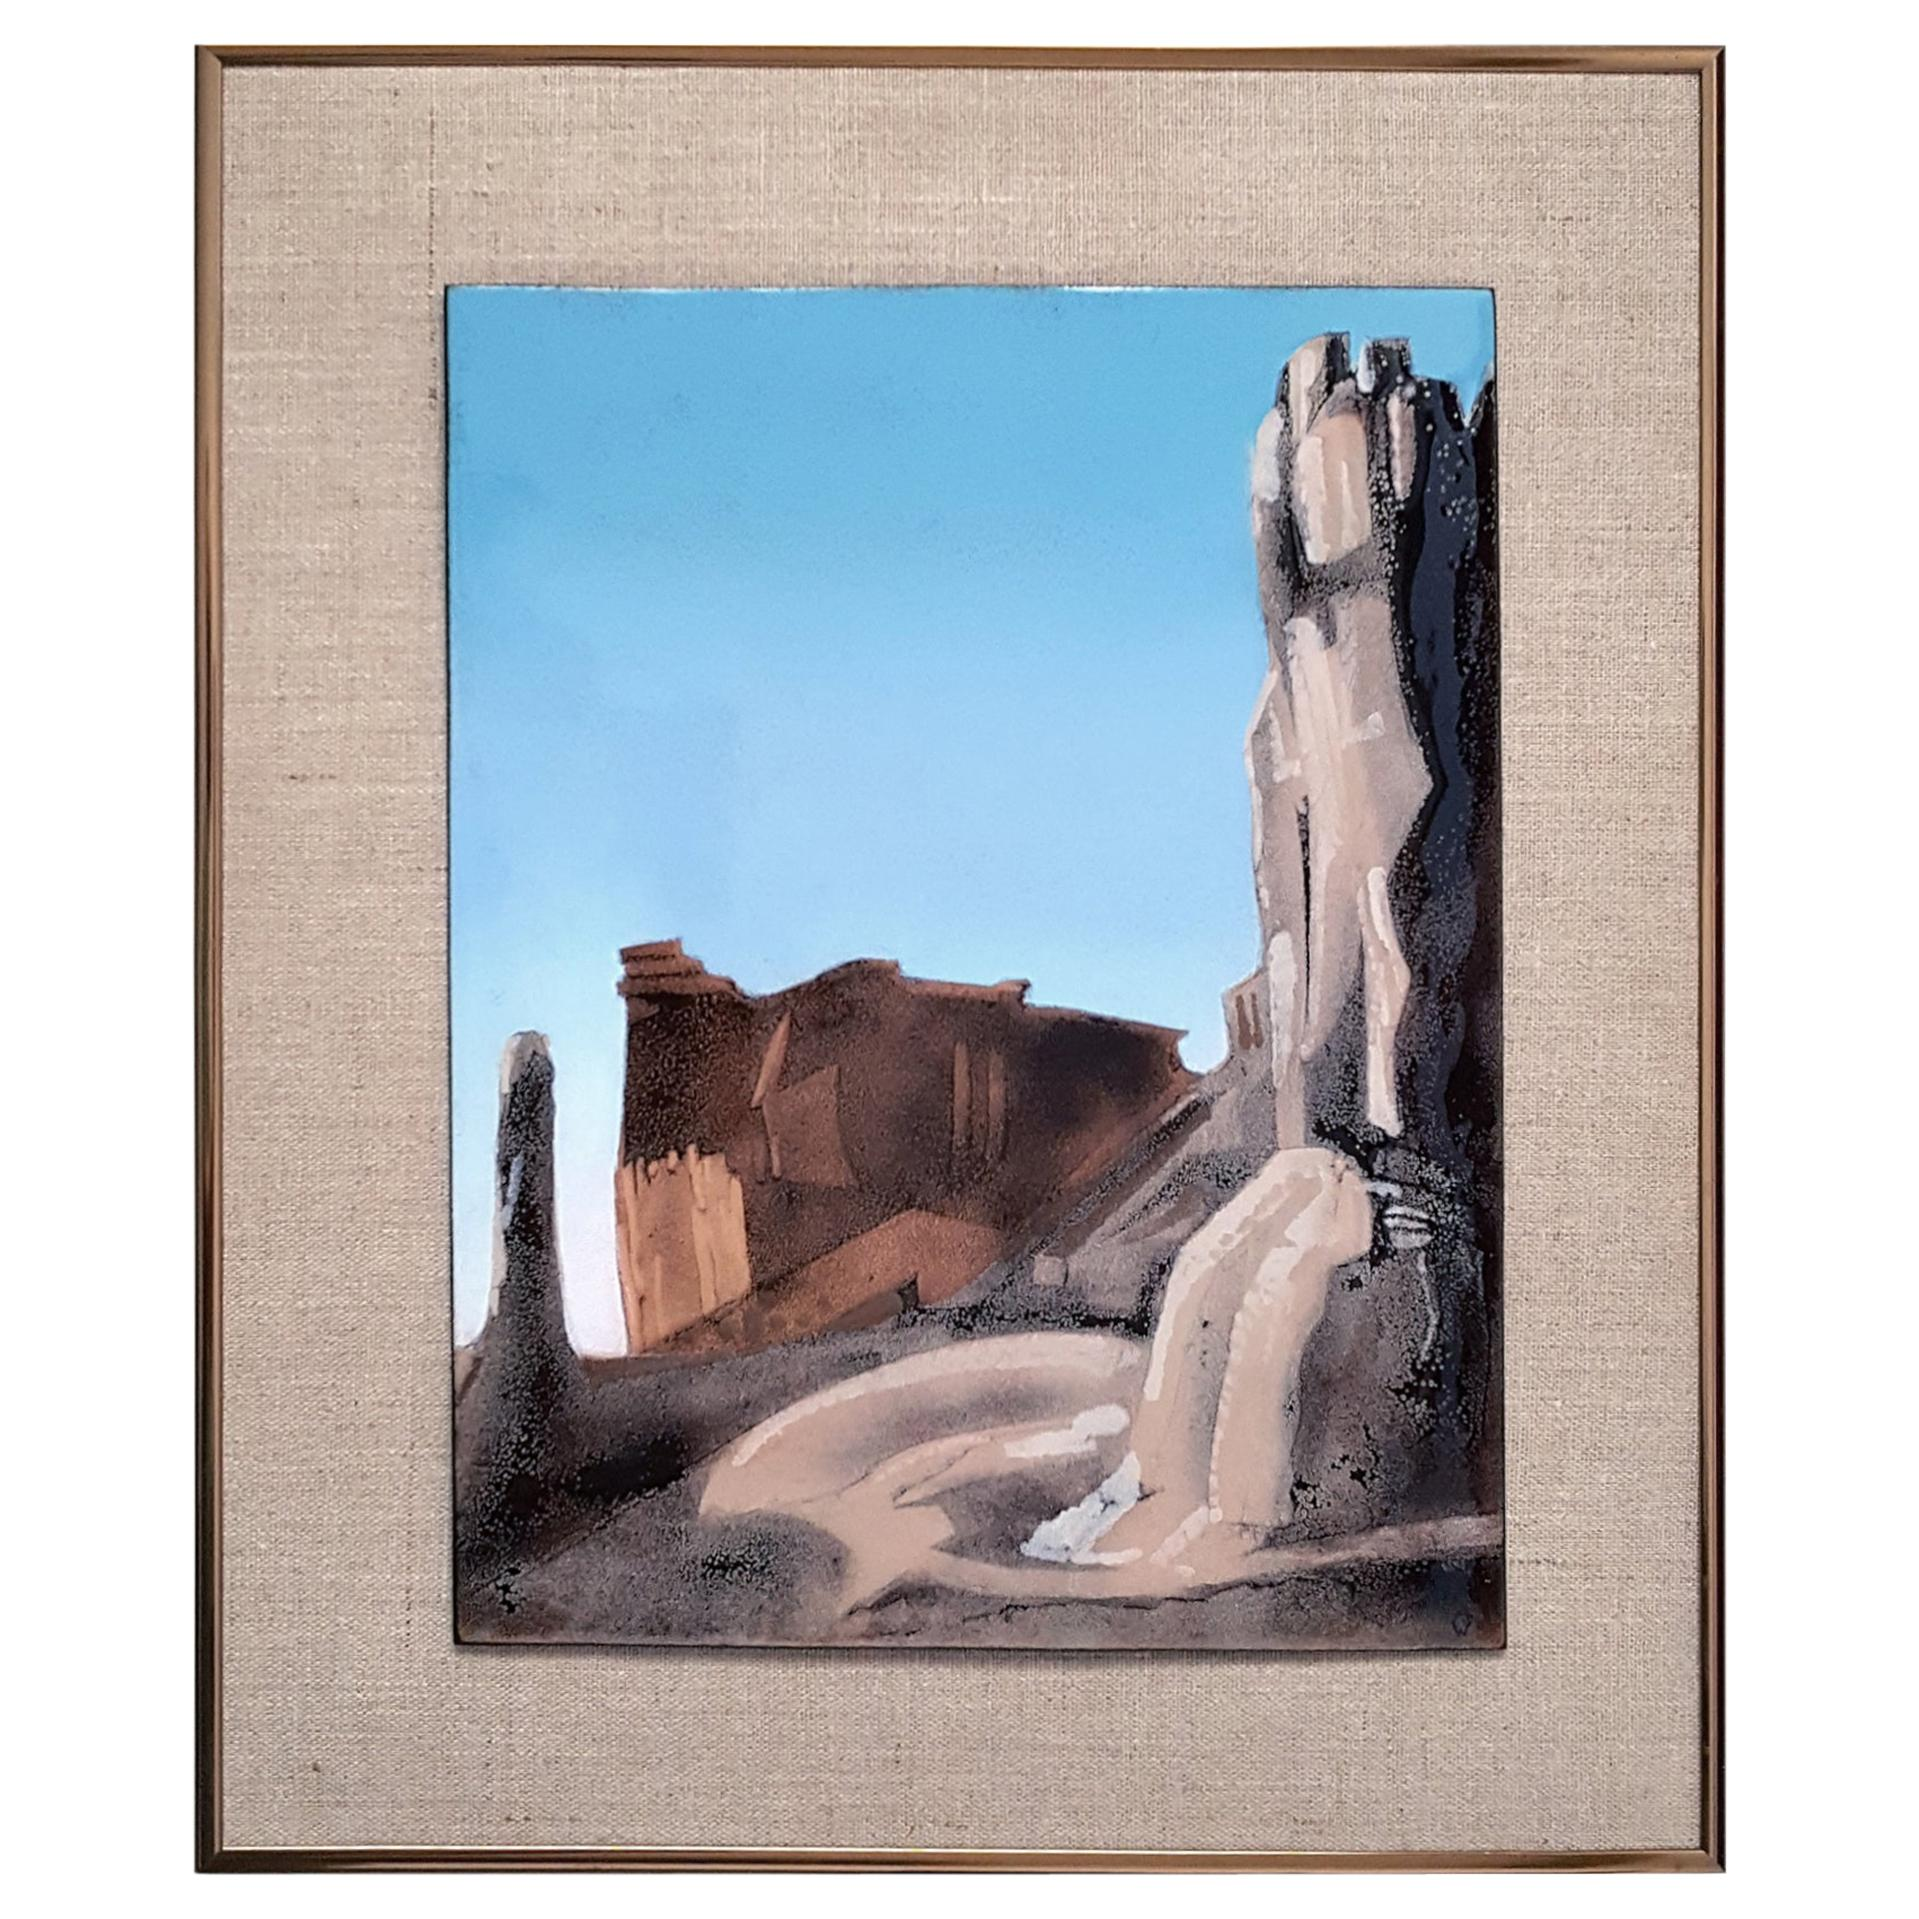 'Capitol Reef' by Irwin Whitaker